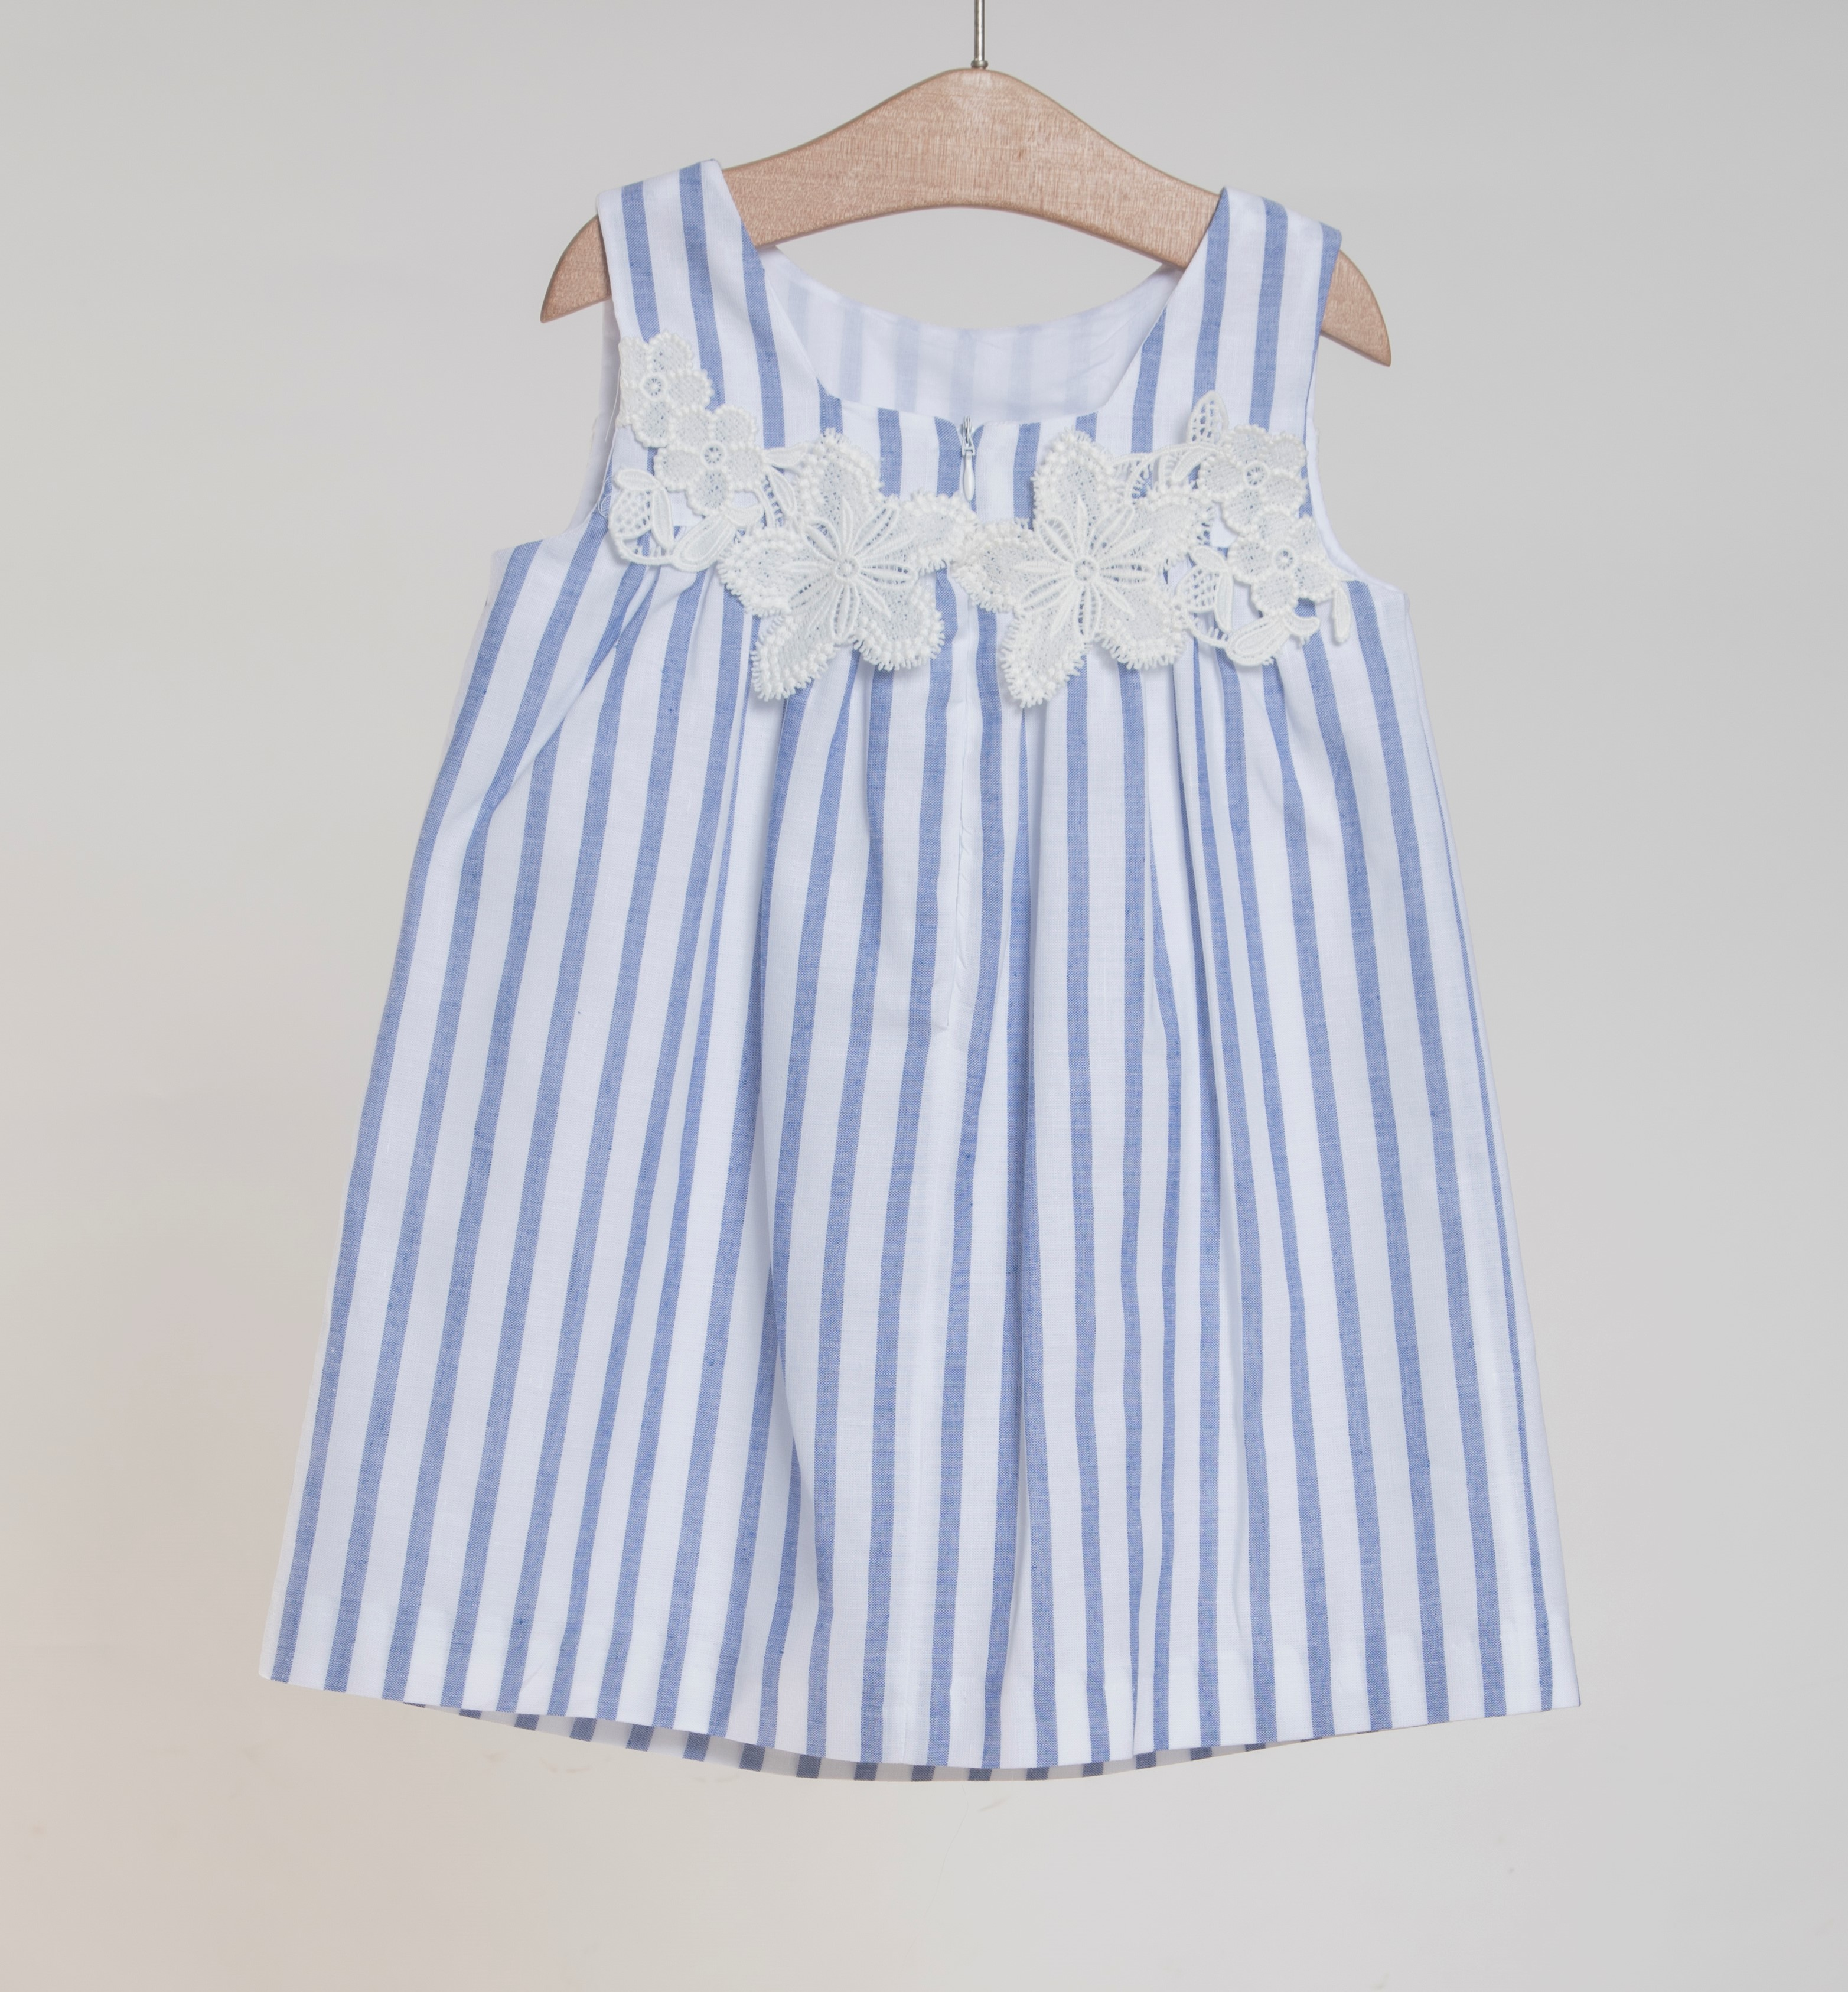 eb3694c7bfc4 FINA EJERIQUE GIRLS WHITE   DUSTY BLUE STRIPED FLORAL DRESS REF ...